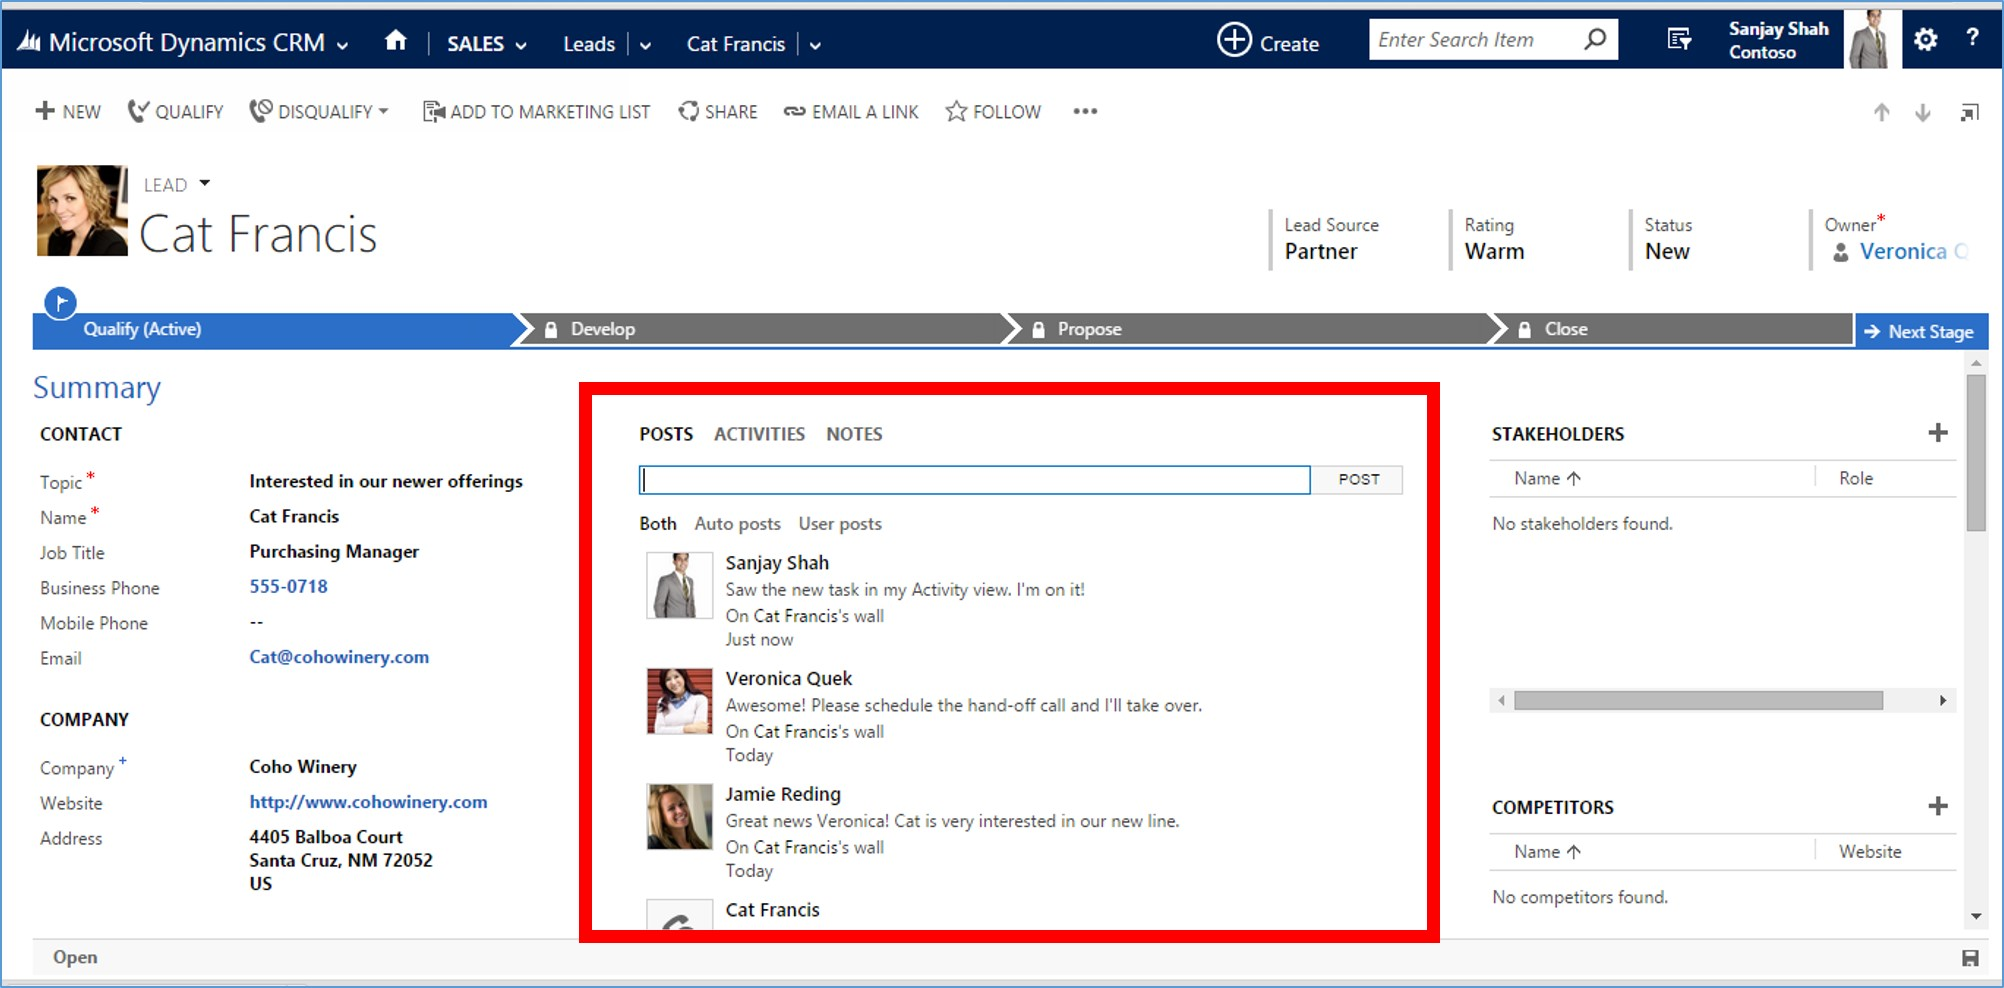 Microsoft Dynamics CRM 2015 Activity Records part 2 image9